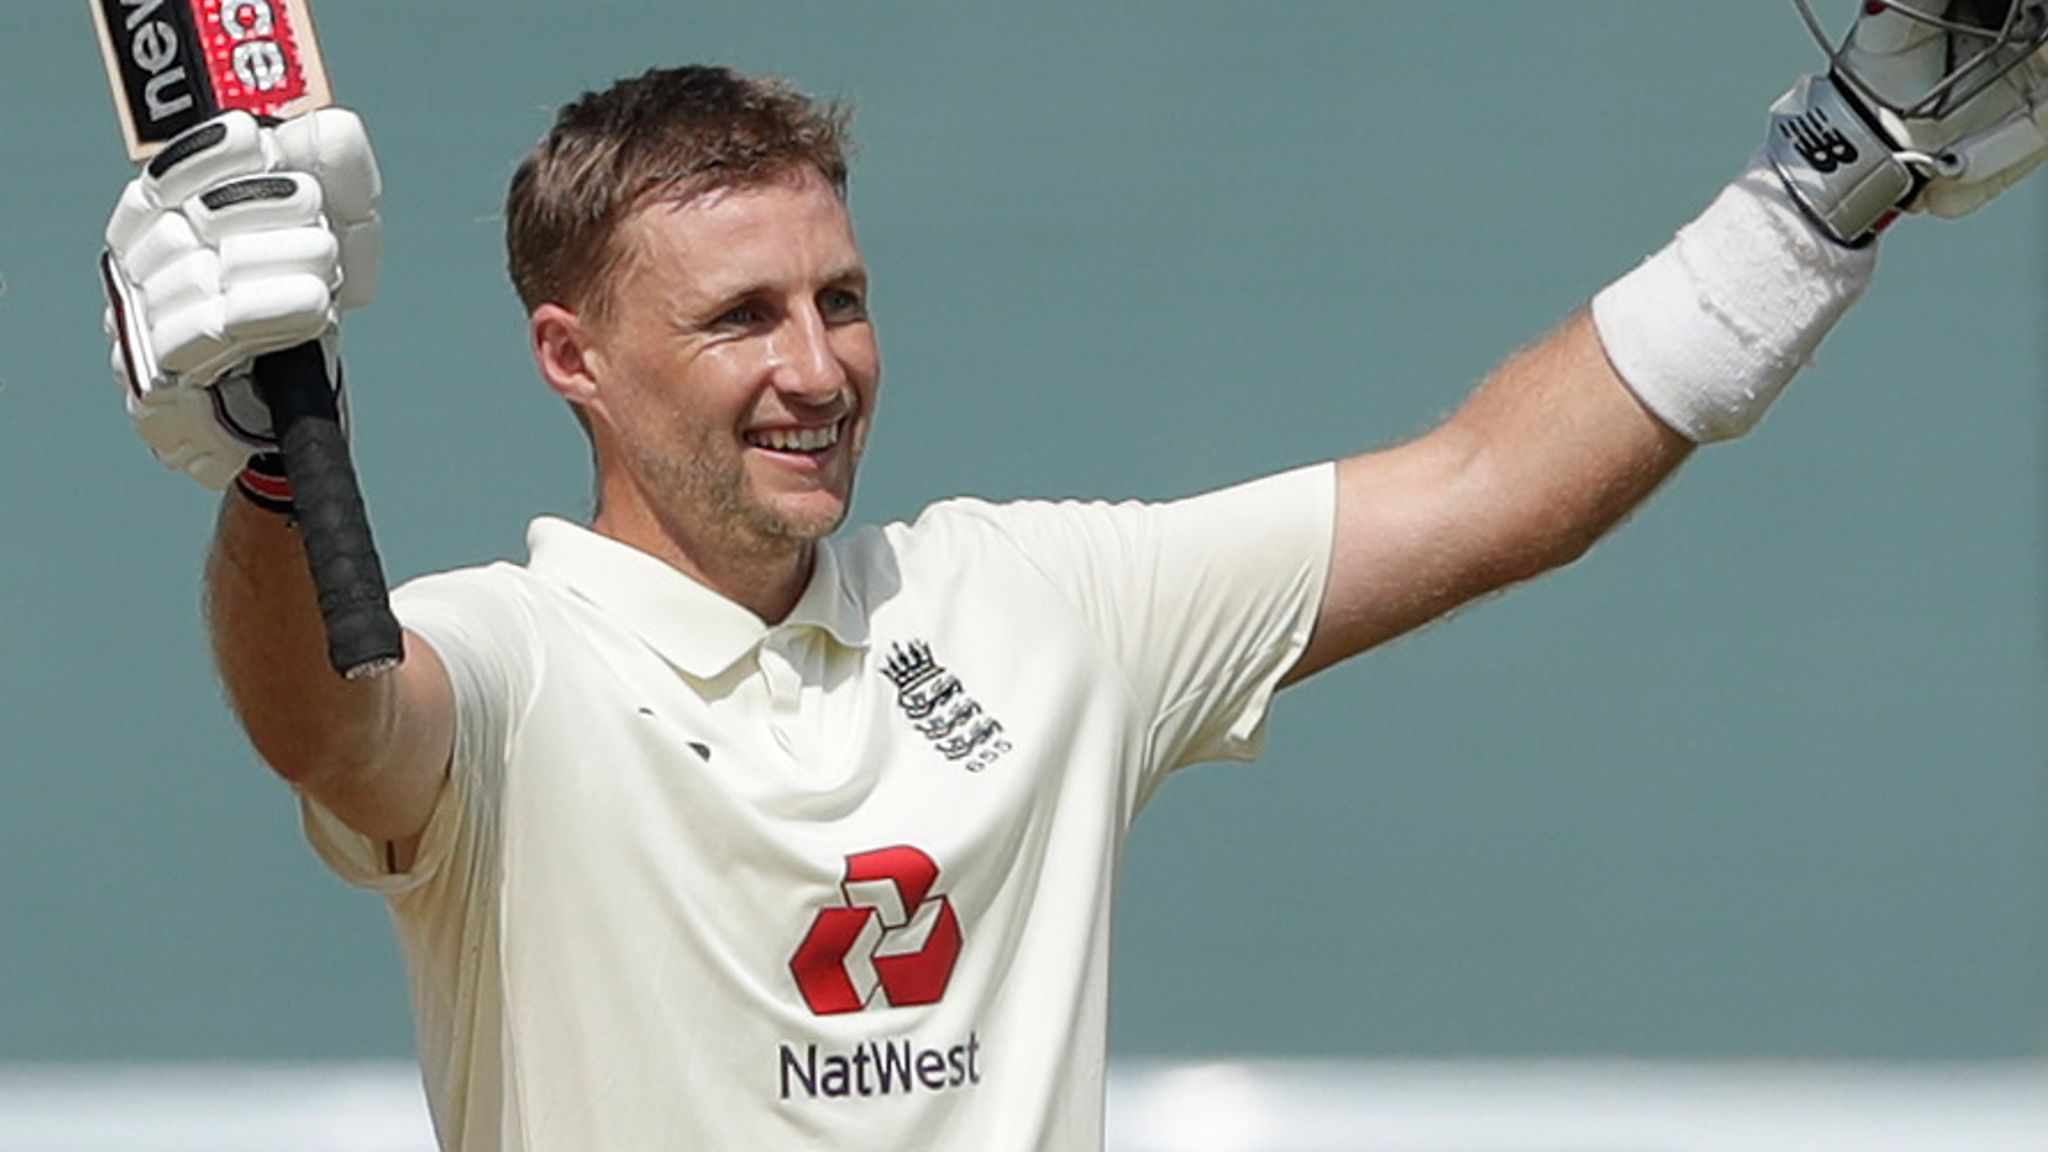 IND vs ENG: Joe Root made history by scoring double century in 100th Test, became first cricketer to do so